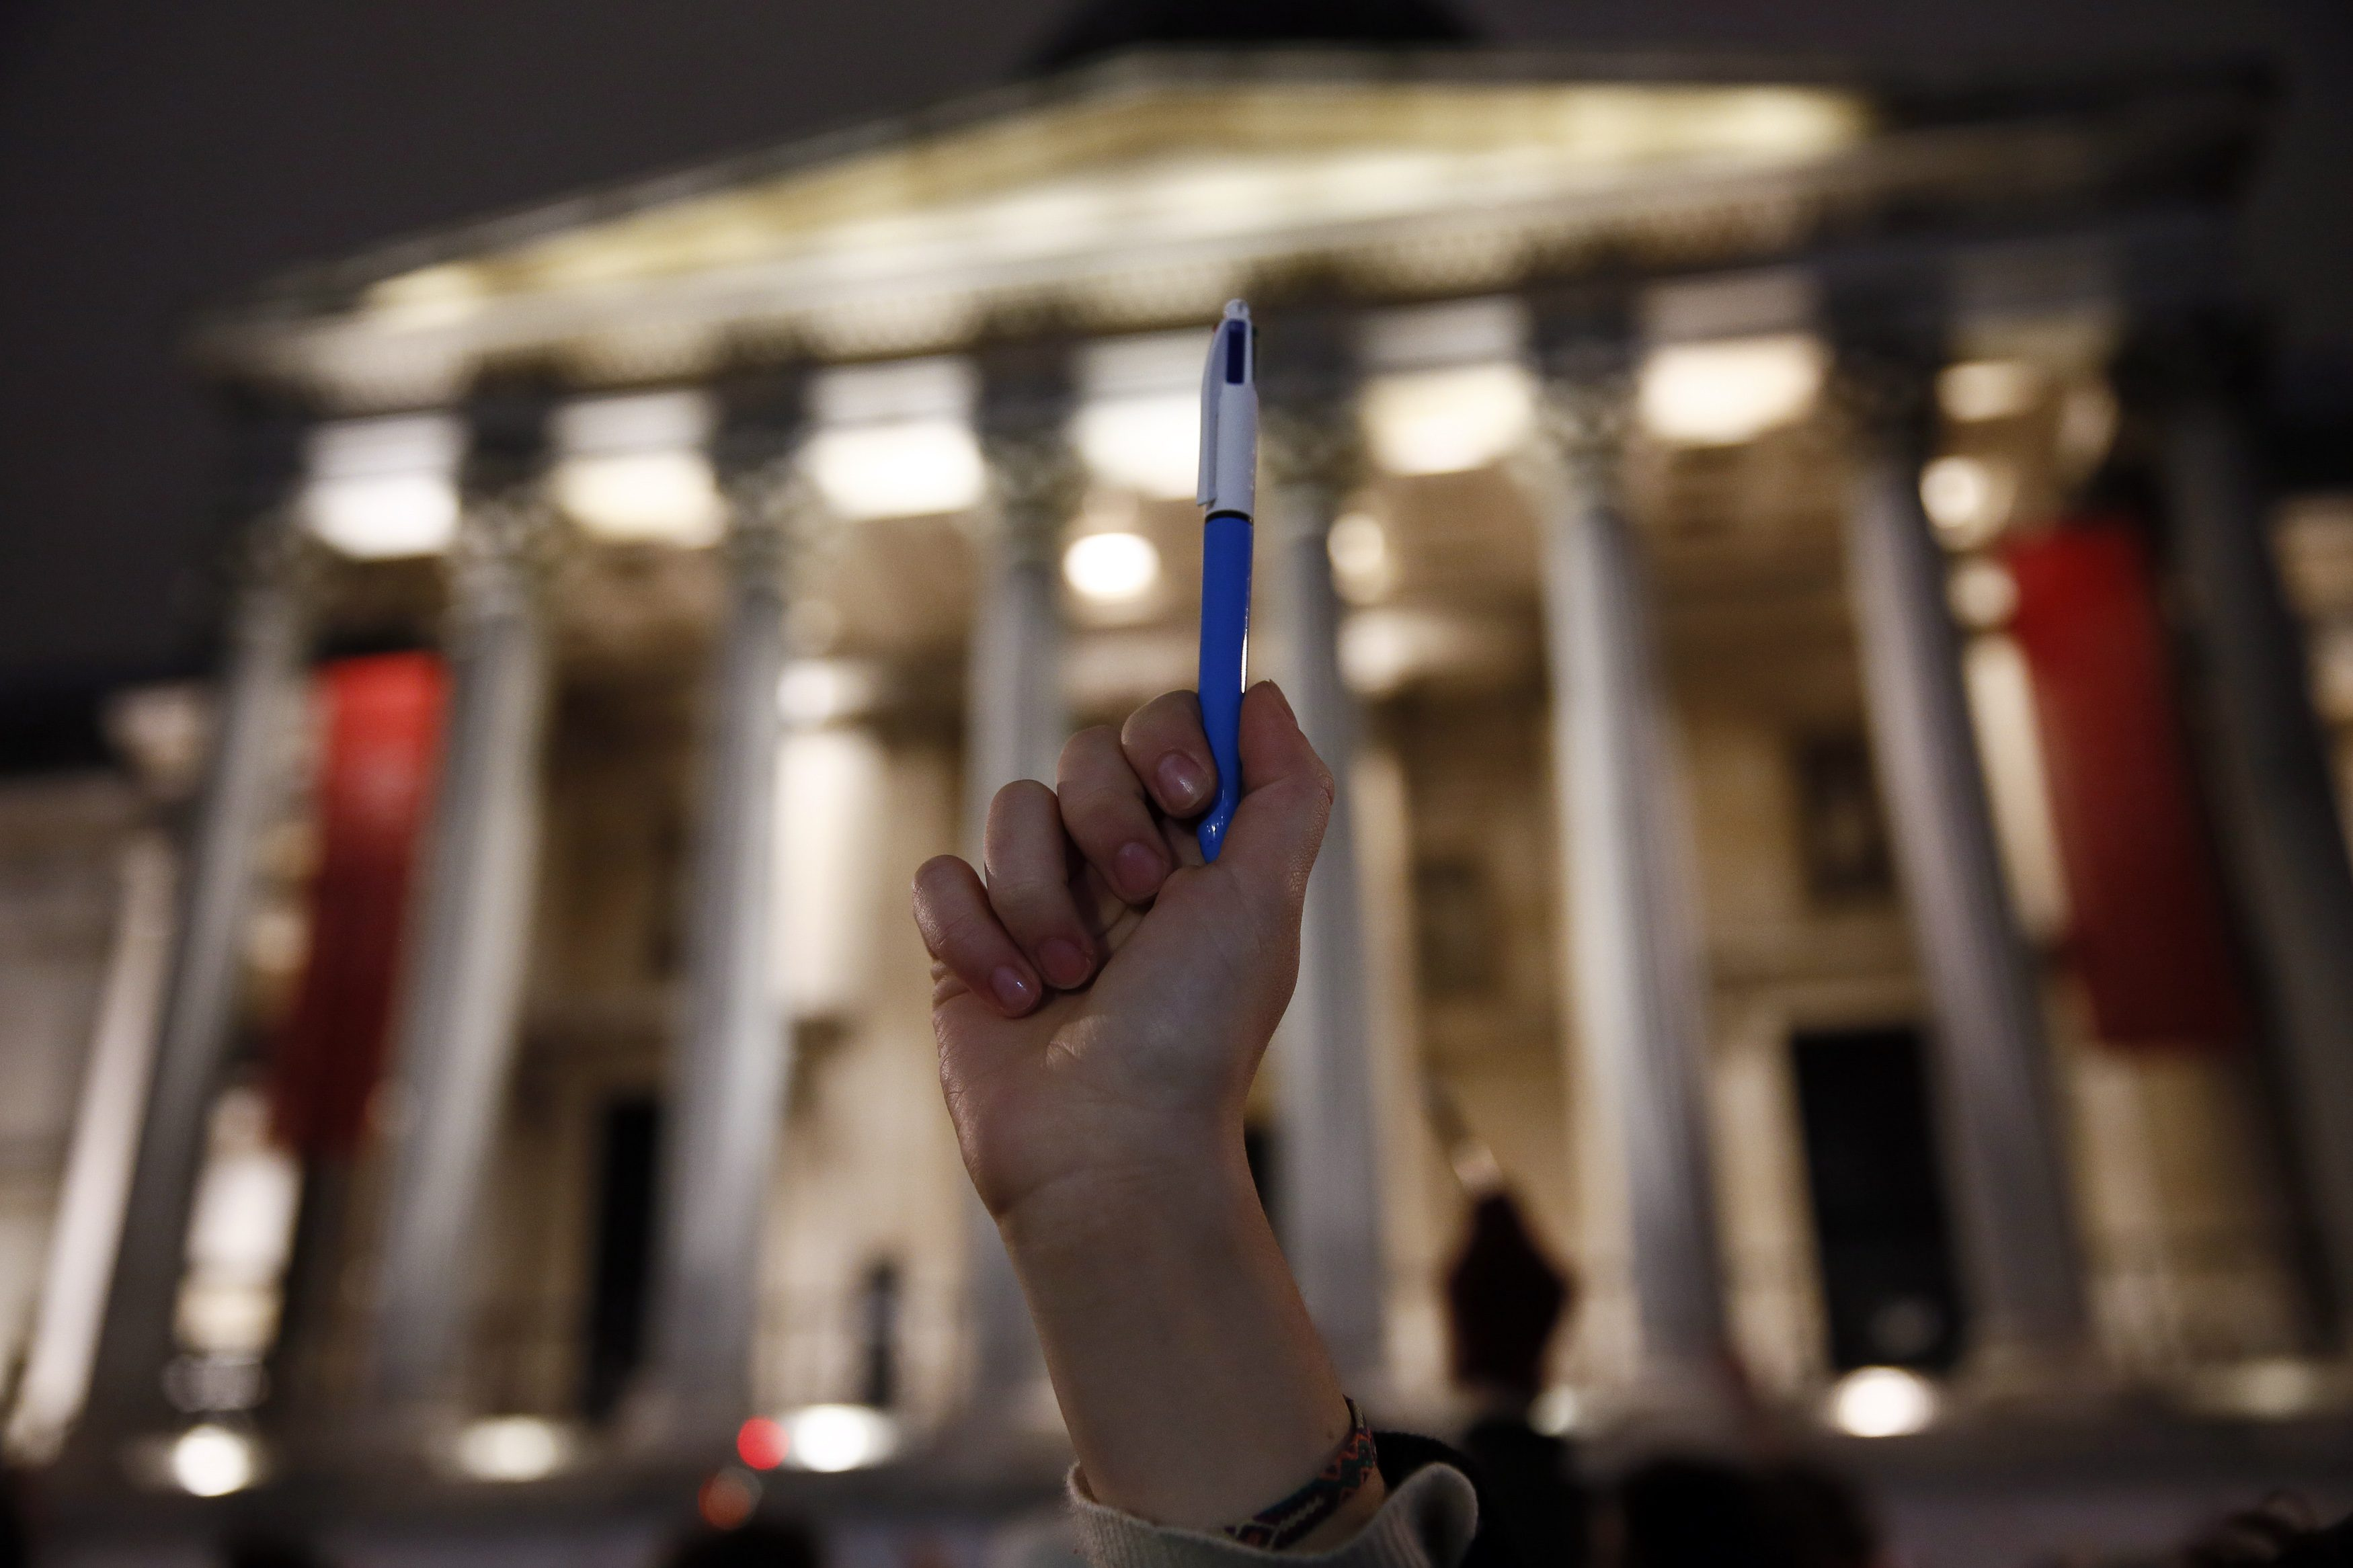 A woman raises a pen during a vigil to pay tribute to the victims of a shooting by gunmen at the offices of weekly satirical magazine Charlie Hebdo in Paris, at Trafalgar Square in London January 7, 2015. Hooded gunmen stormed the Paris offices of the weekly satirical magazine known for lampooning Islam and other religions, shooting dead at least 12 people, including two police officers, in the worst militant attack on French soil in decades. REUTERS/Stefan Wermuth (BRITAIN - Tags: POLITICS CRIME LAW CIVIL UNREST MEDIA)